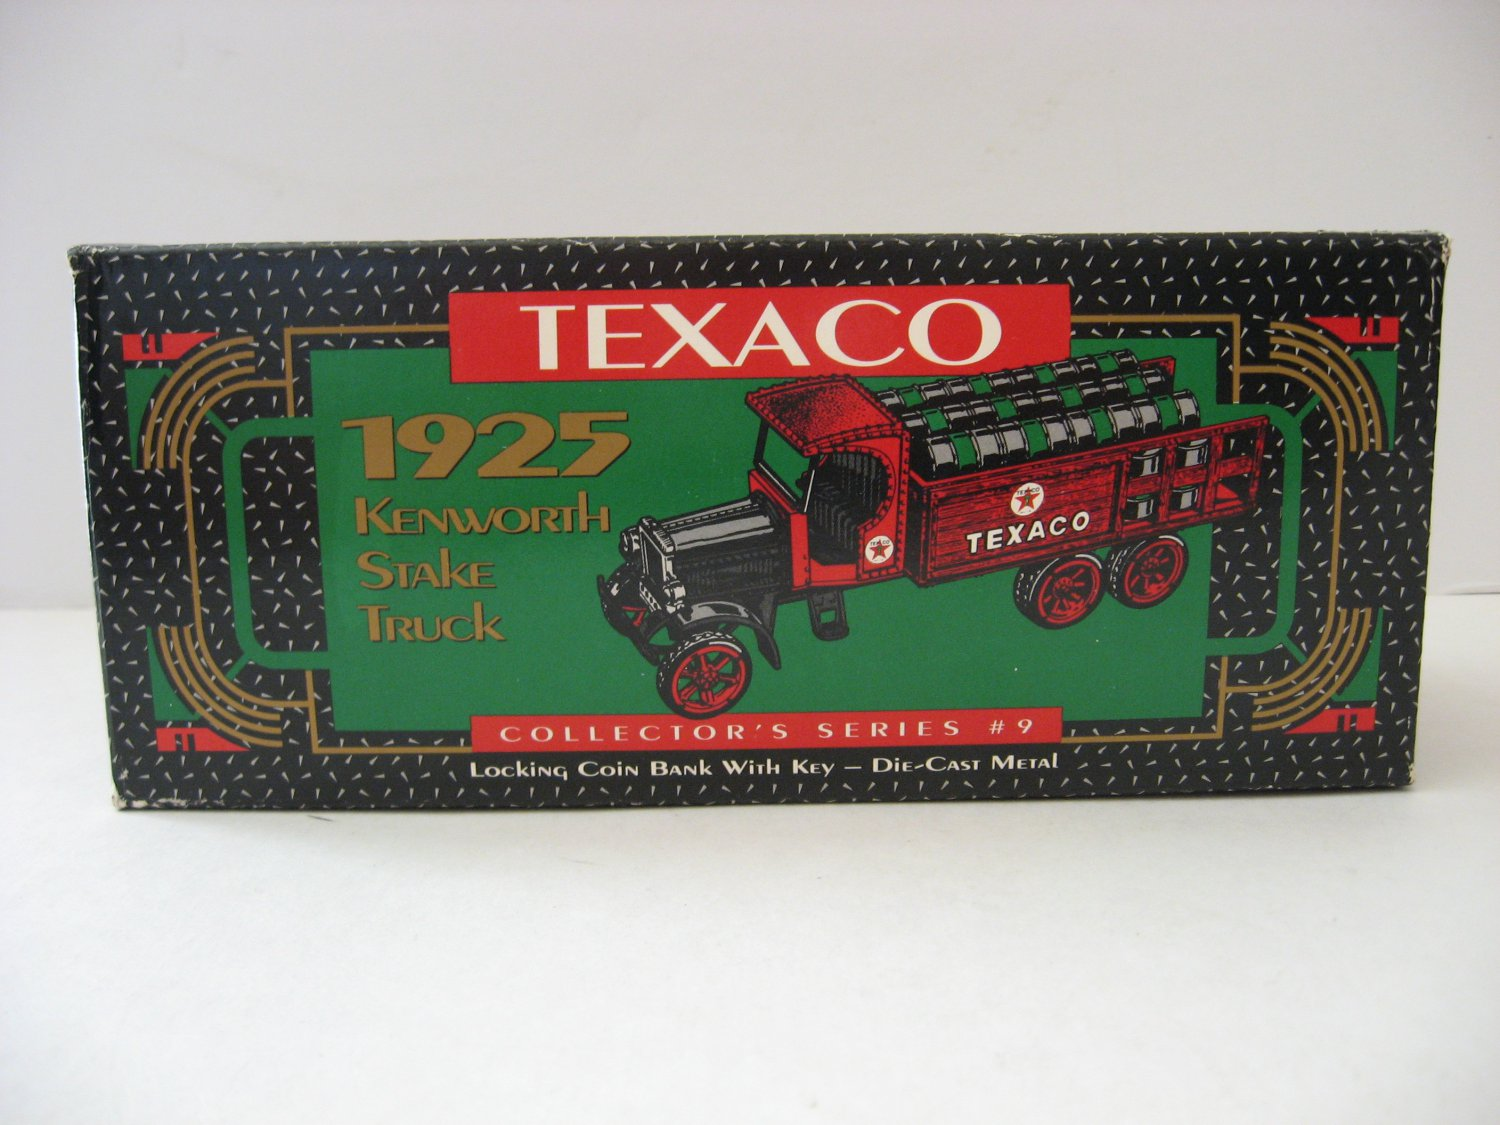 New Texaco 1925 Stake Kenworth Truck